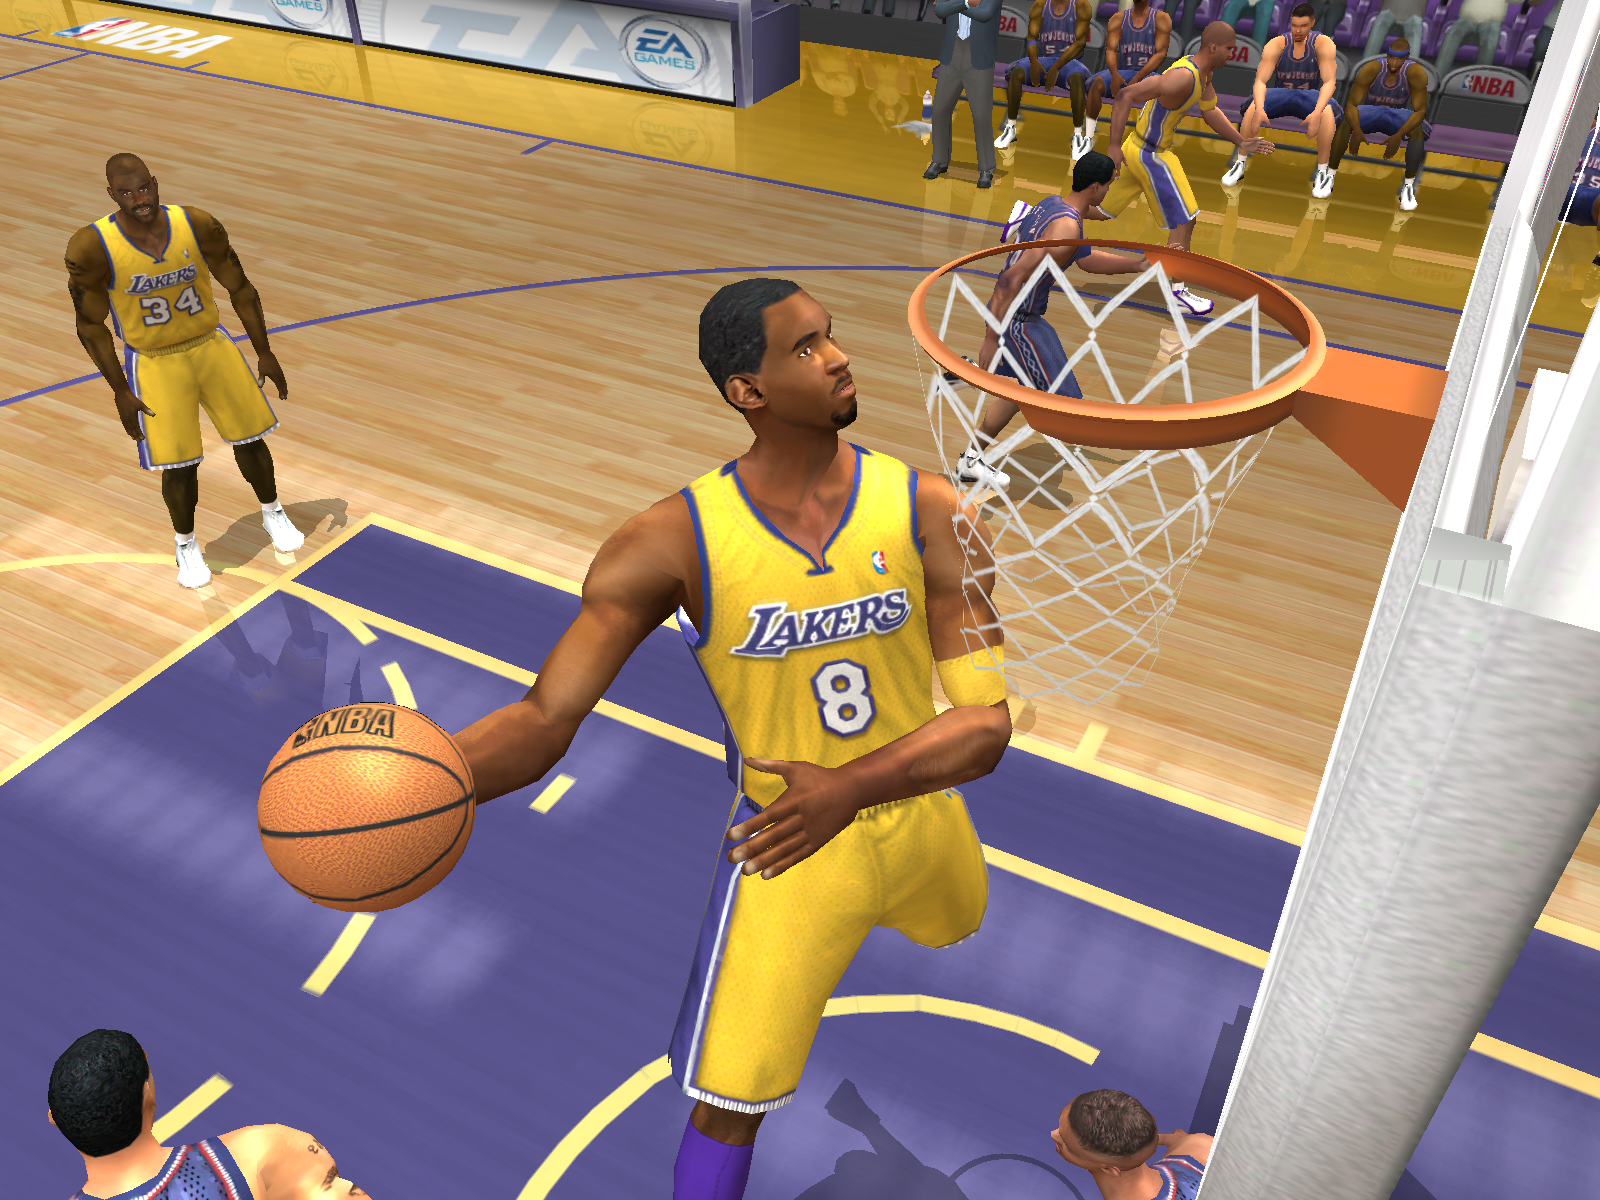 Kobe Bryant's 20-year career also shows how far video games have ...